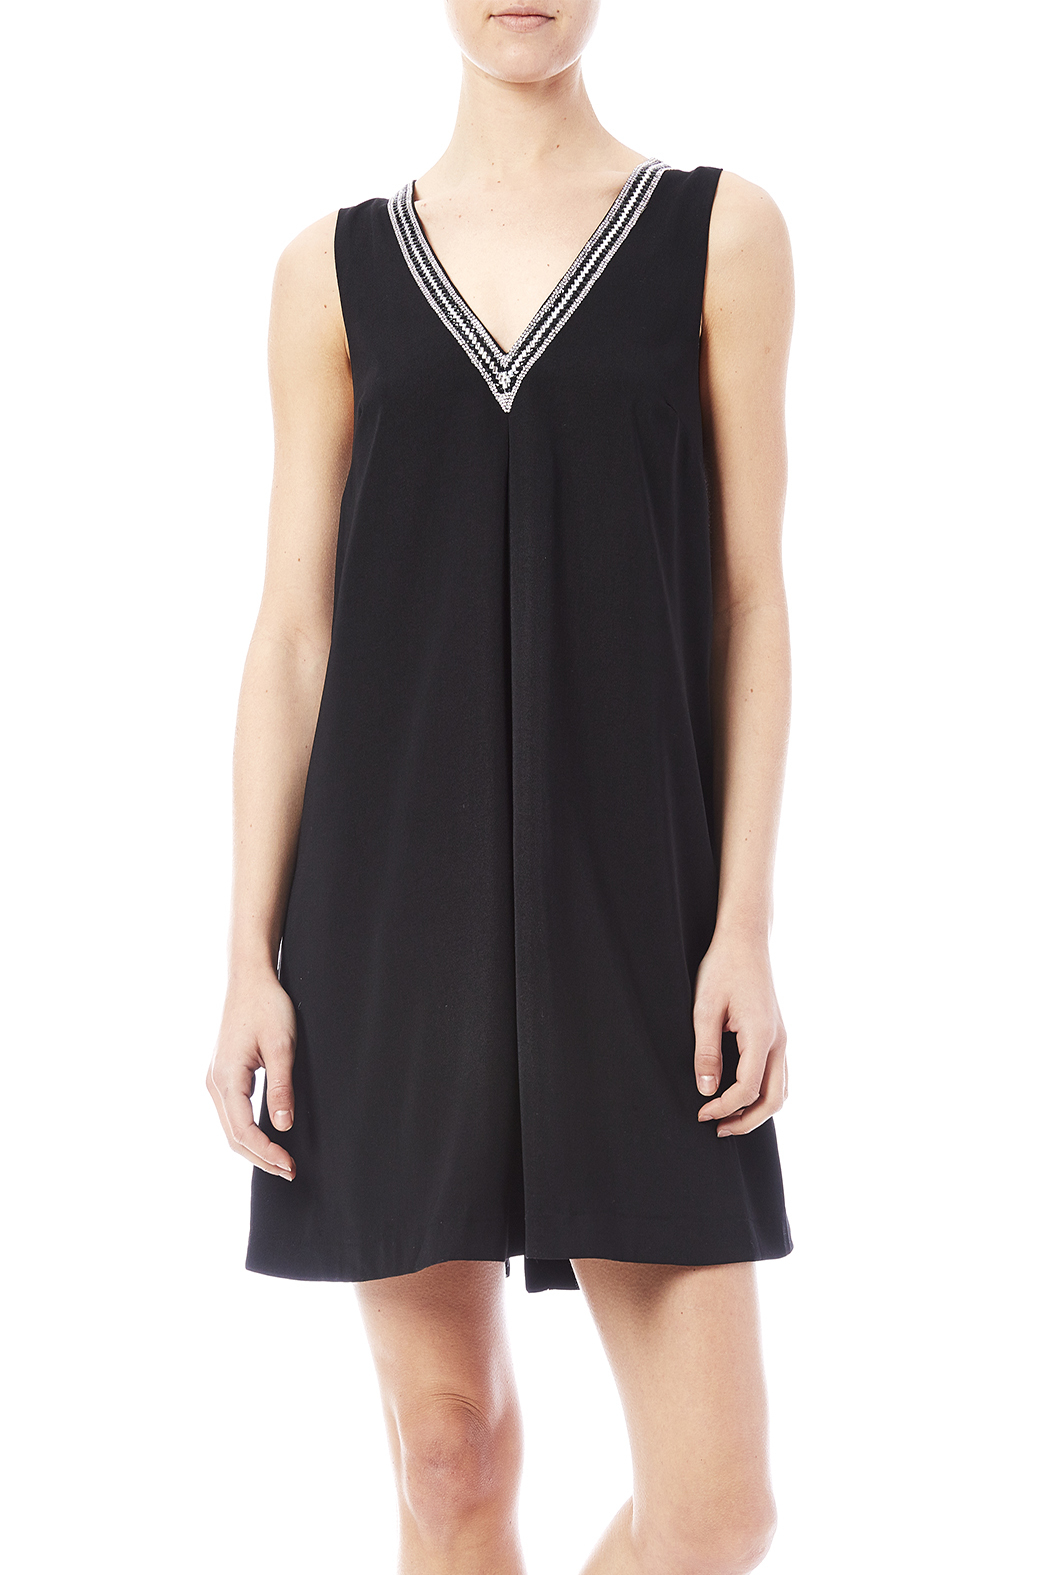 Ark Amp Co Victoria Dress From North Carolina By Fabulous